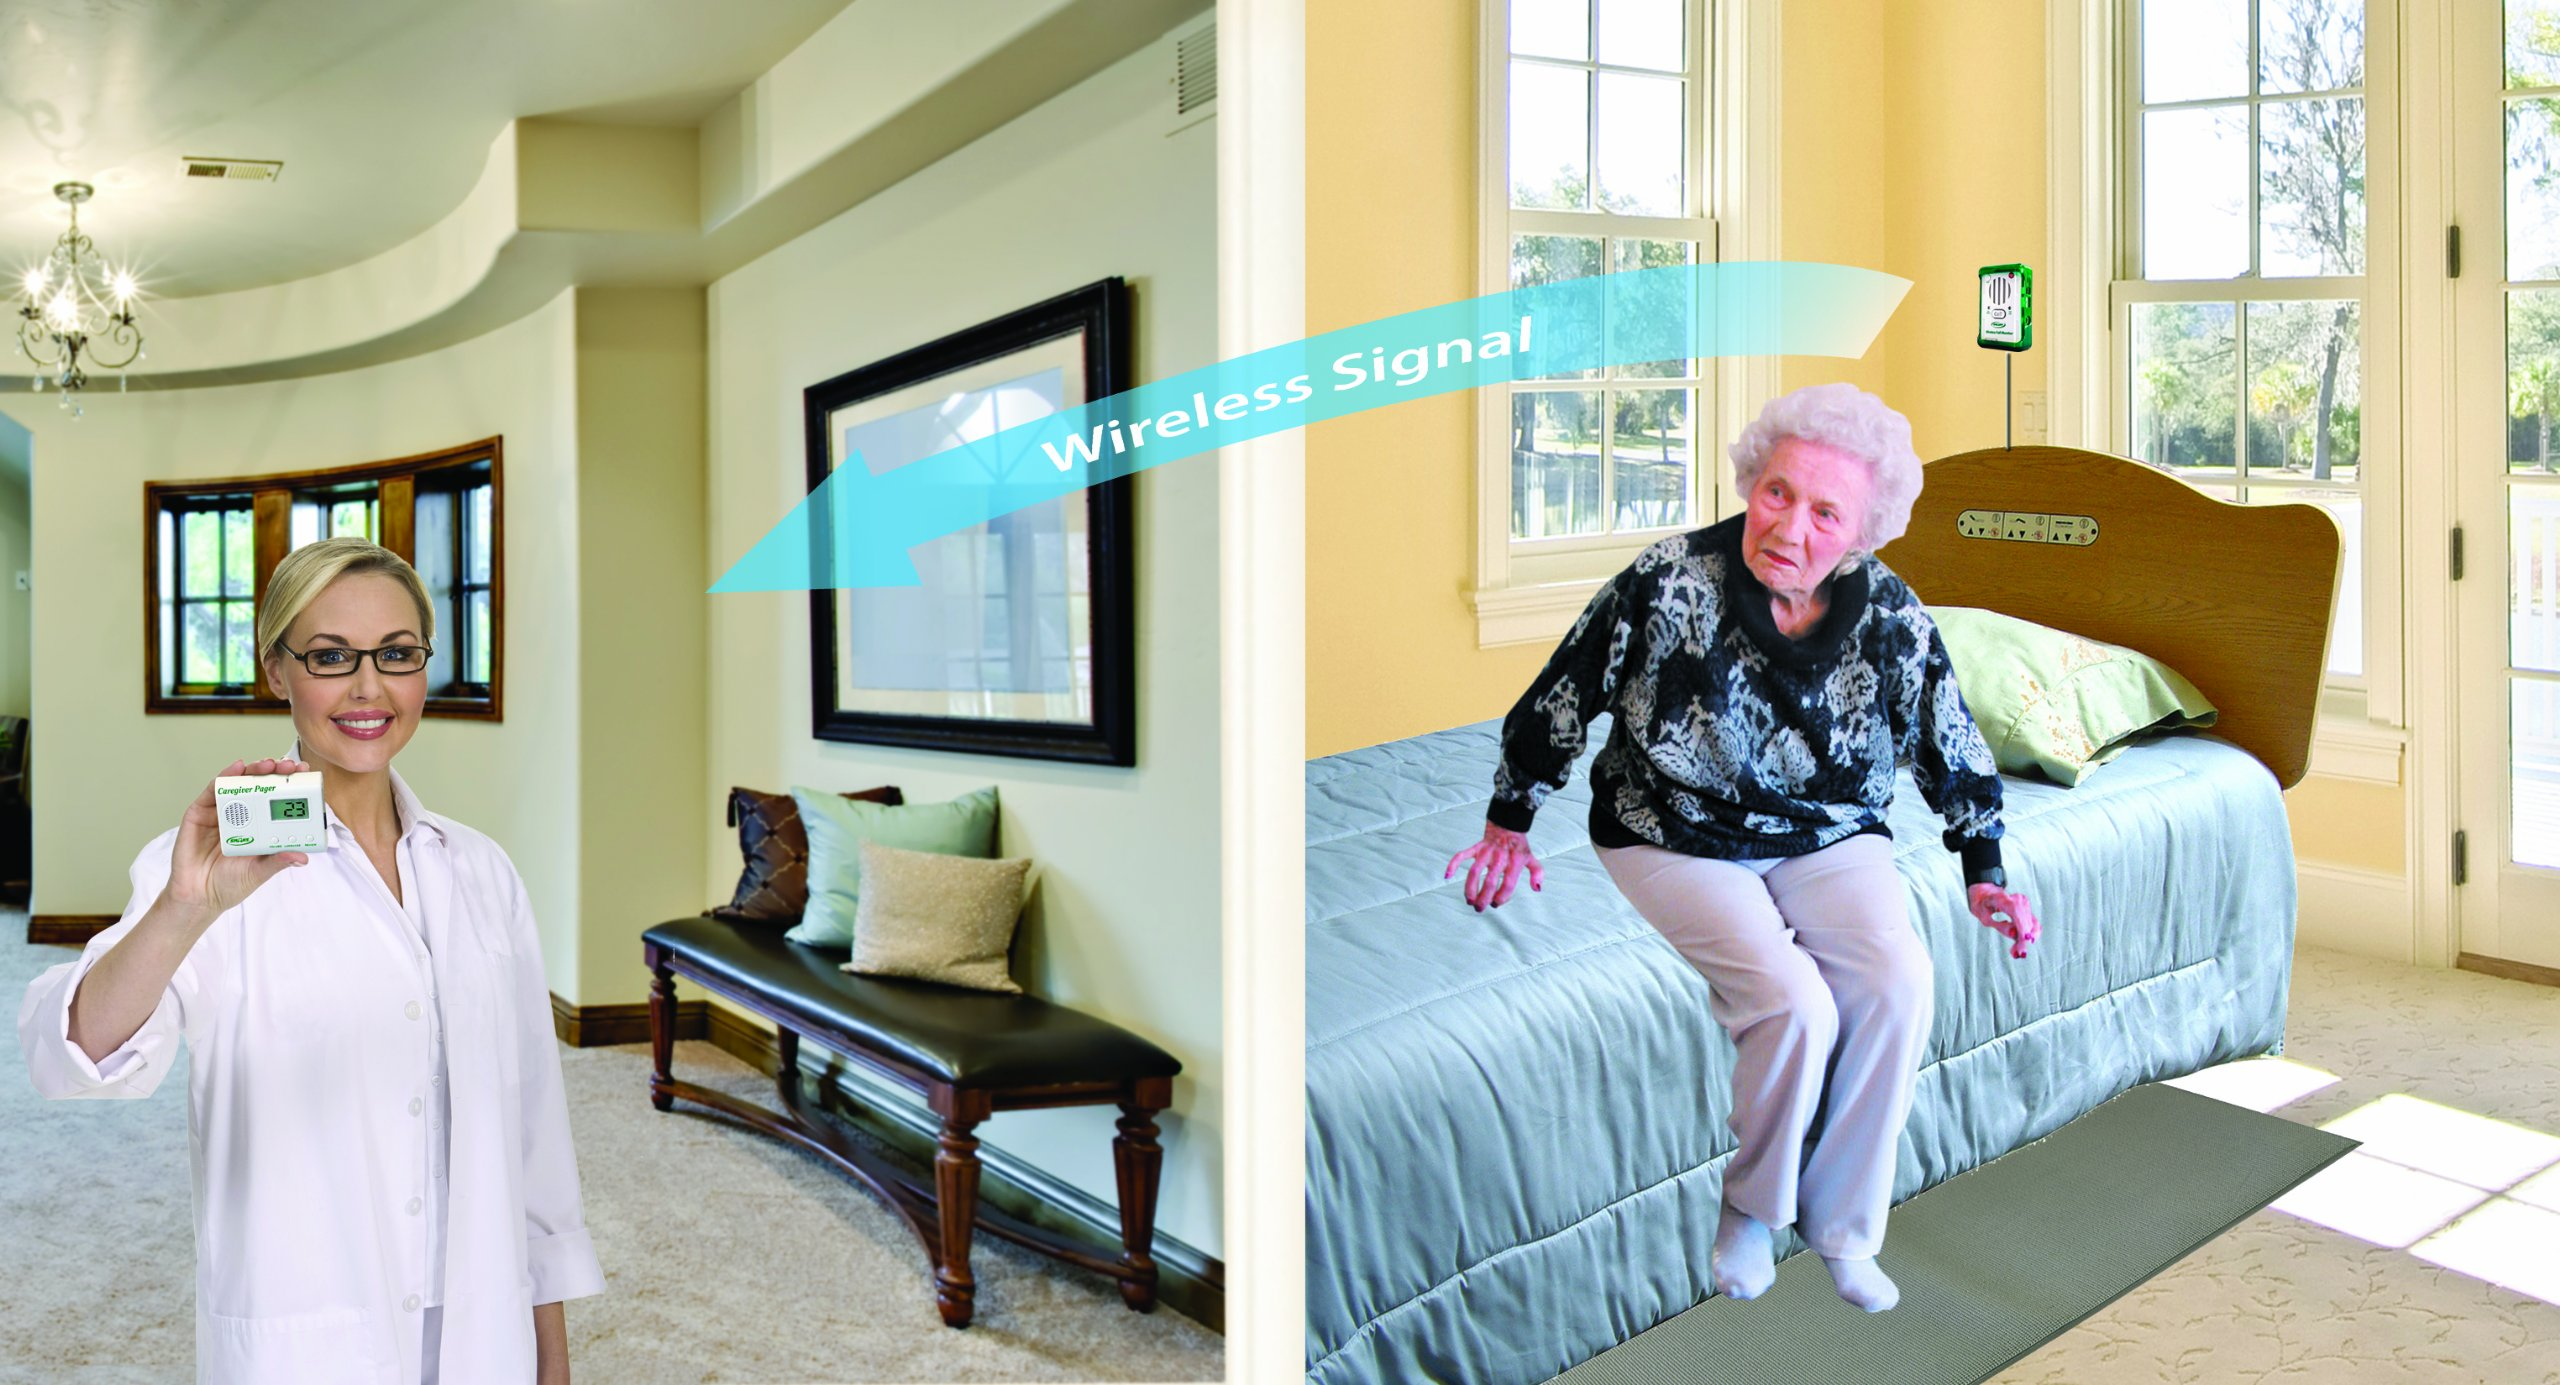 Wireless Alarm & Pager with Weight Sensing Floor Mat - Alert a Caregiver in Another Room! by Smart Caregiver